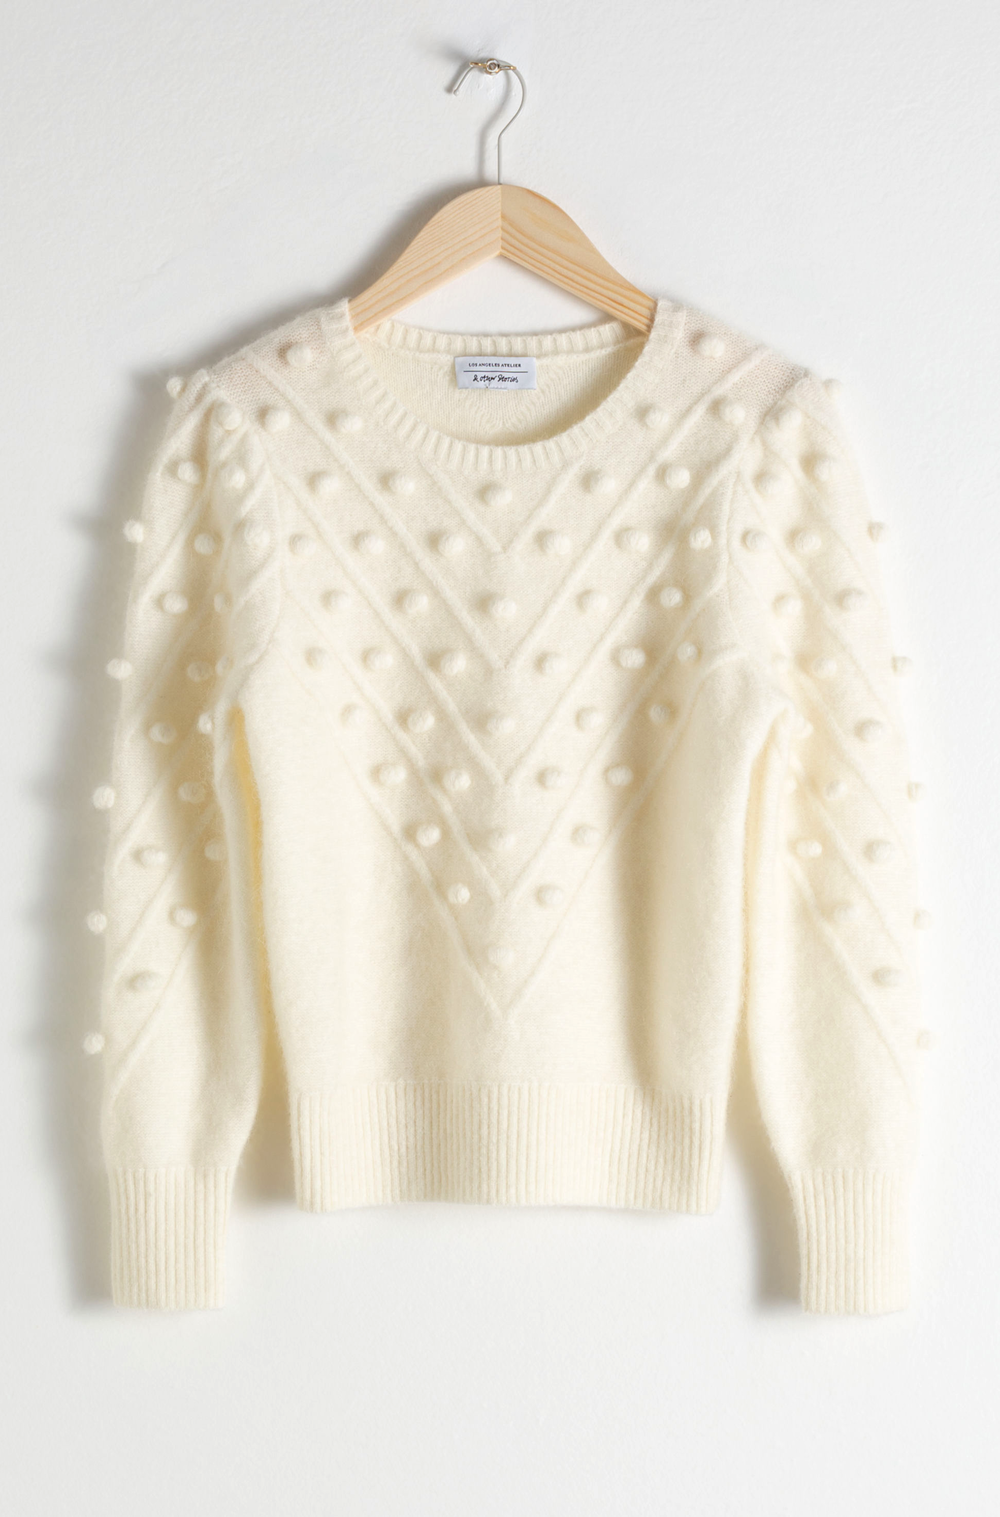 & Other Stories Popcorn Sweater     $119